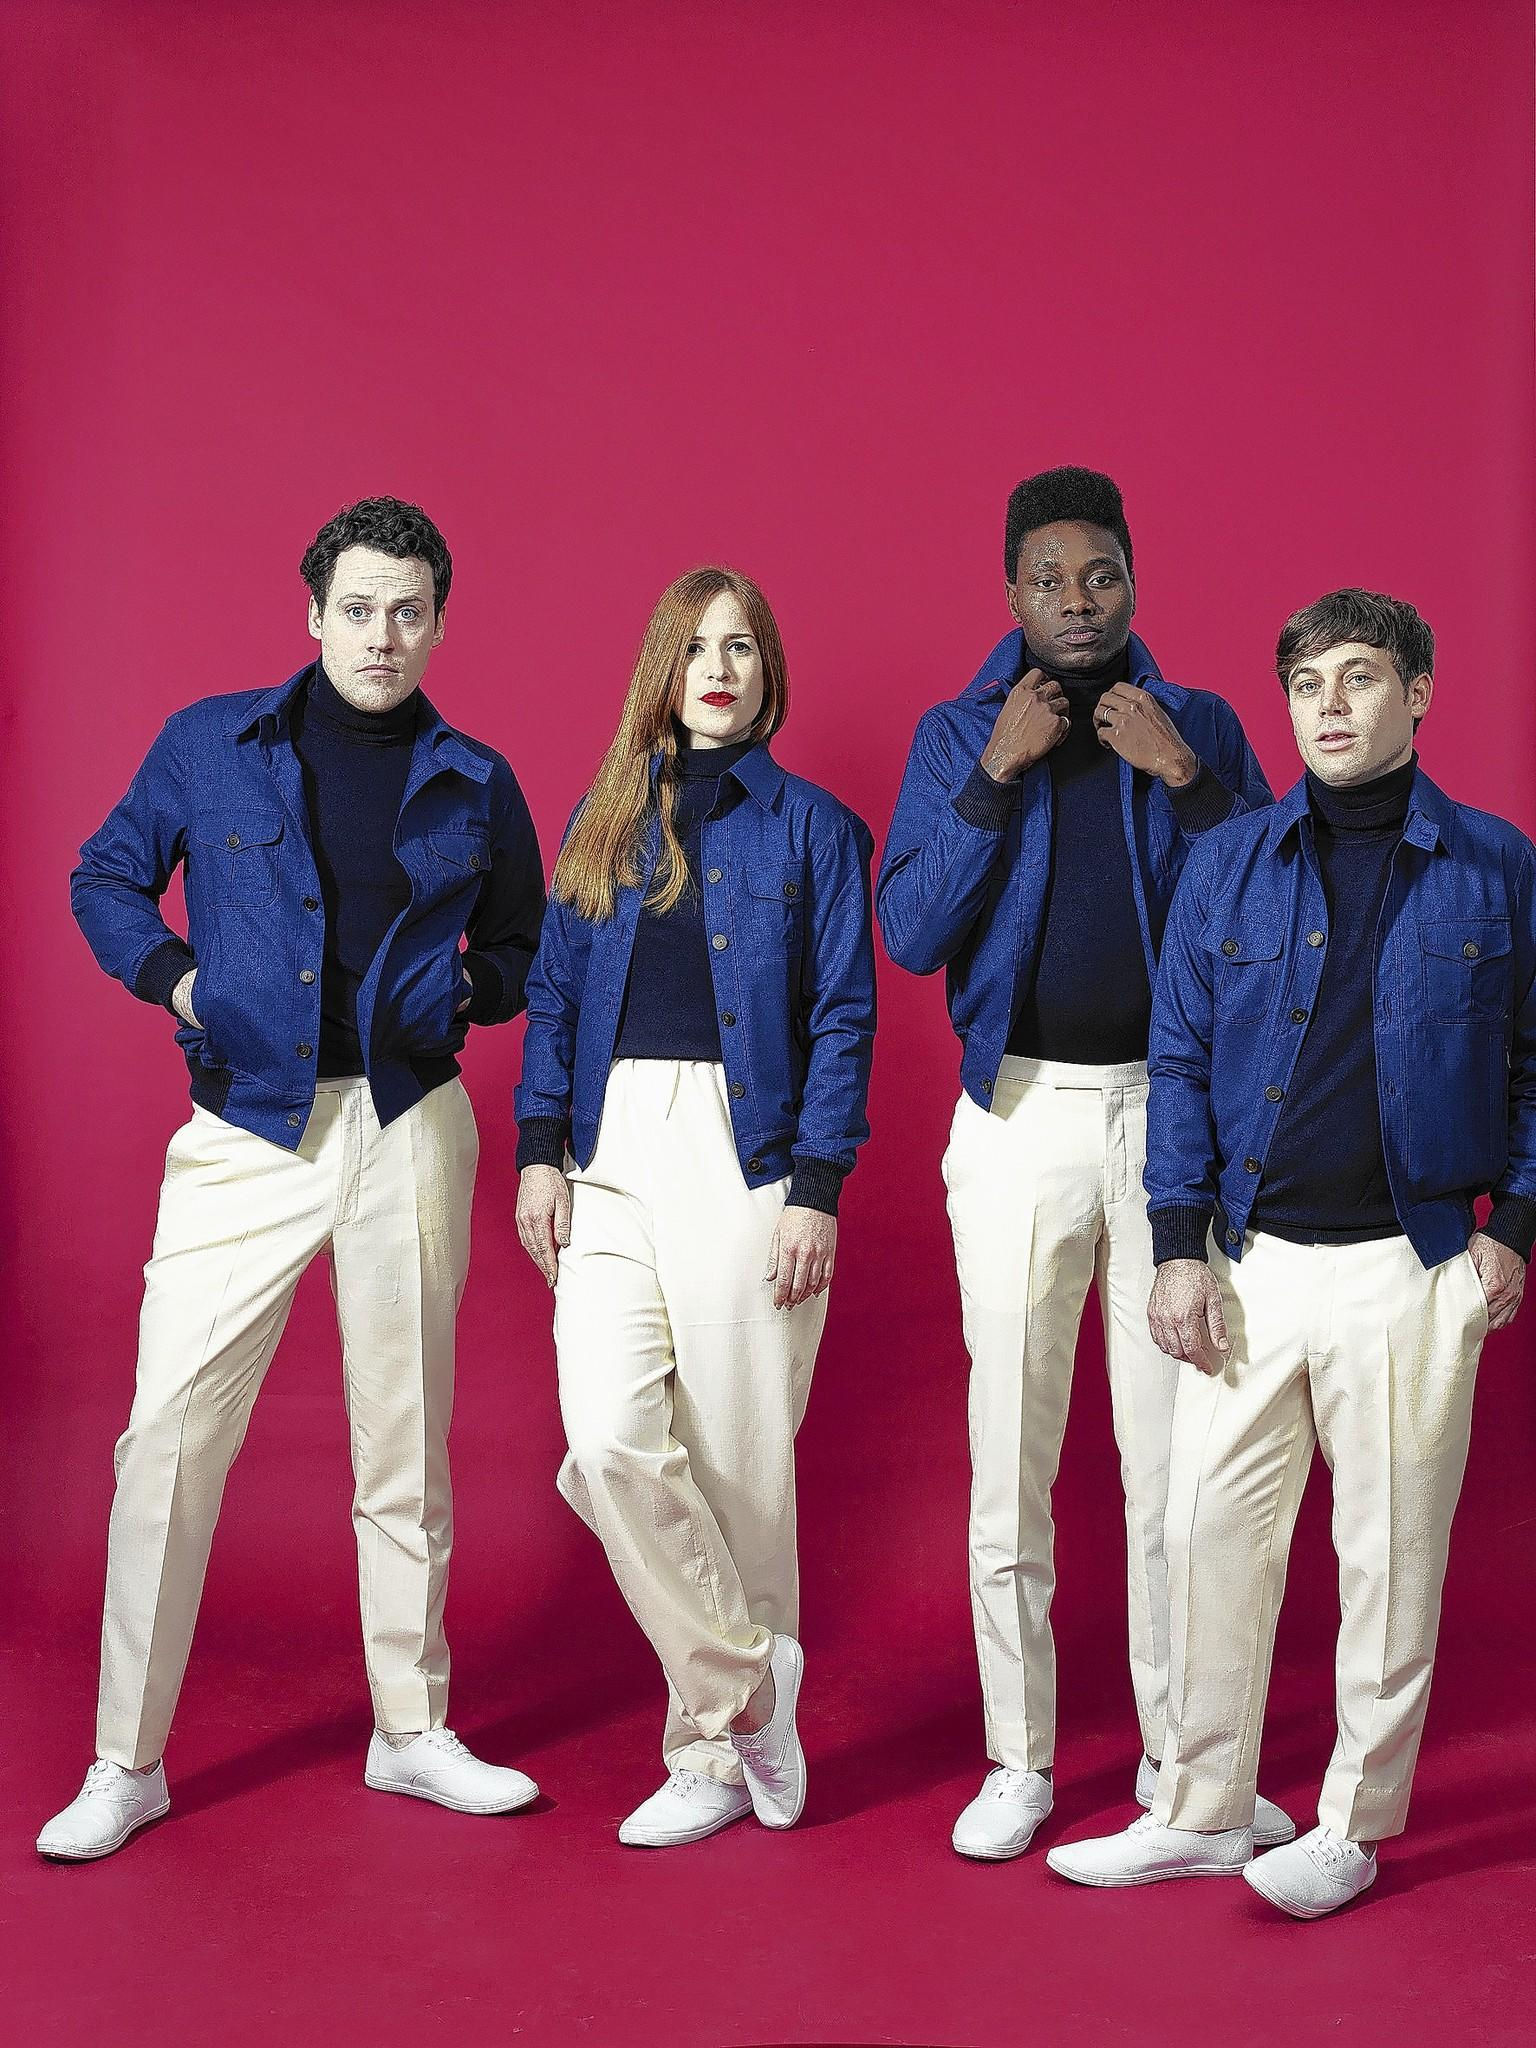 Metronomy is composed of Joseph Mount, from left, Anna Prior, Olugbenga Adelekan and Oscar Cash.